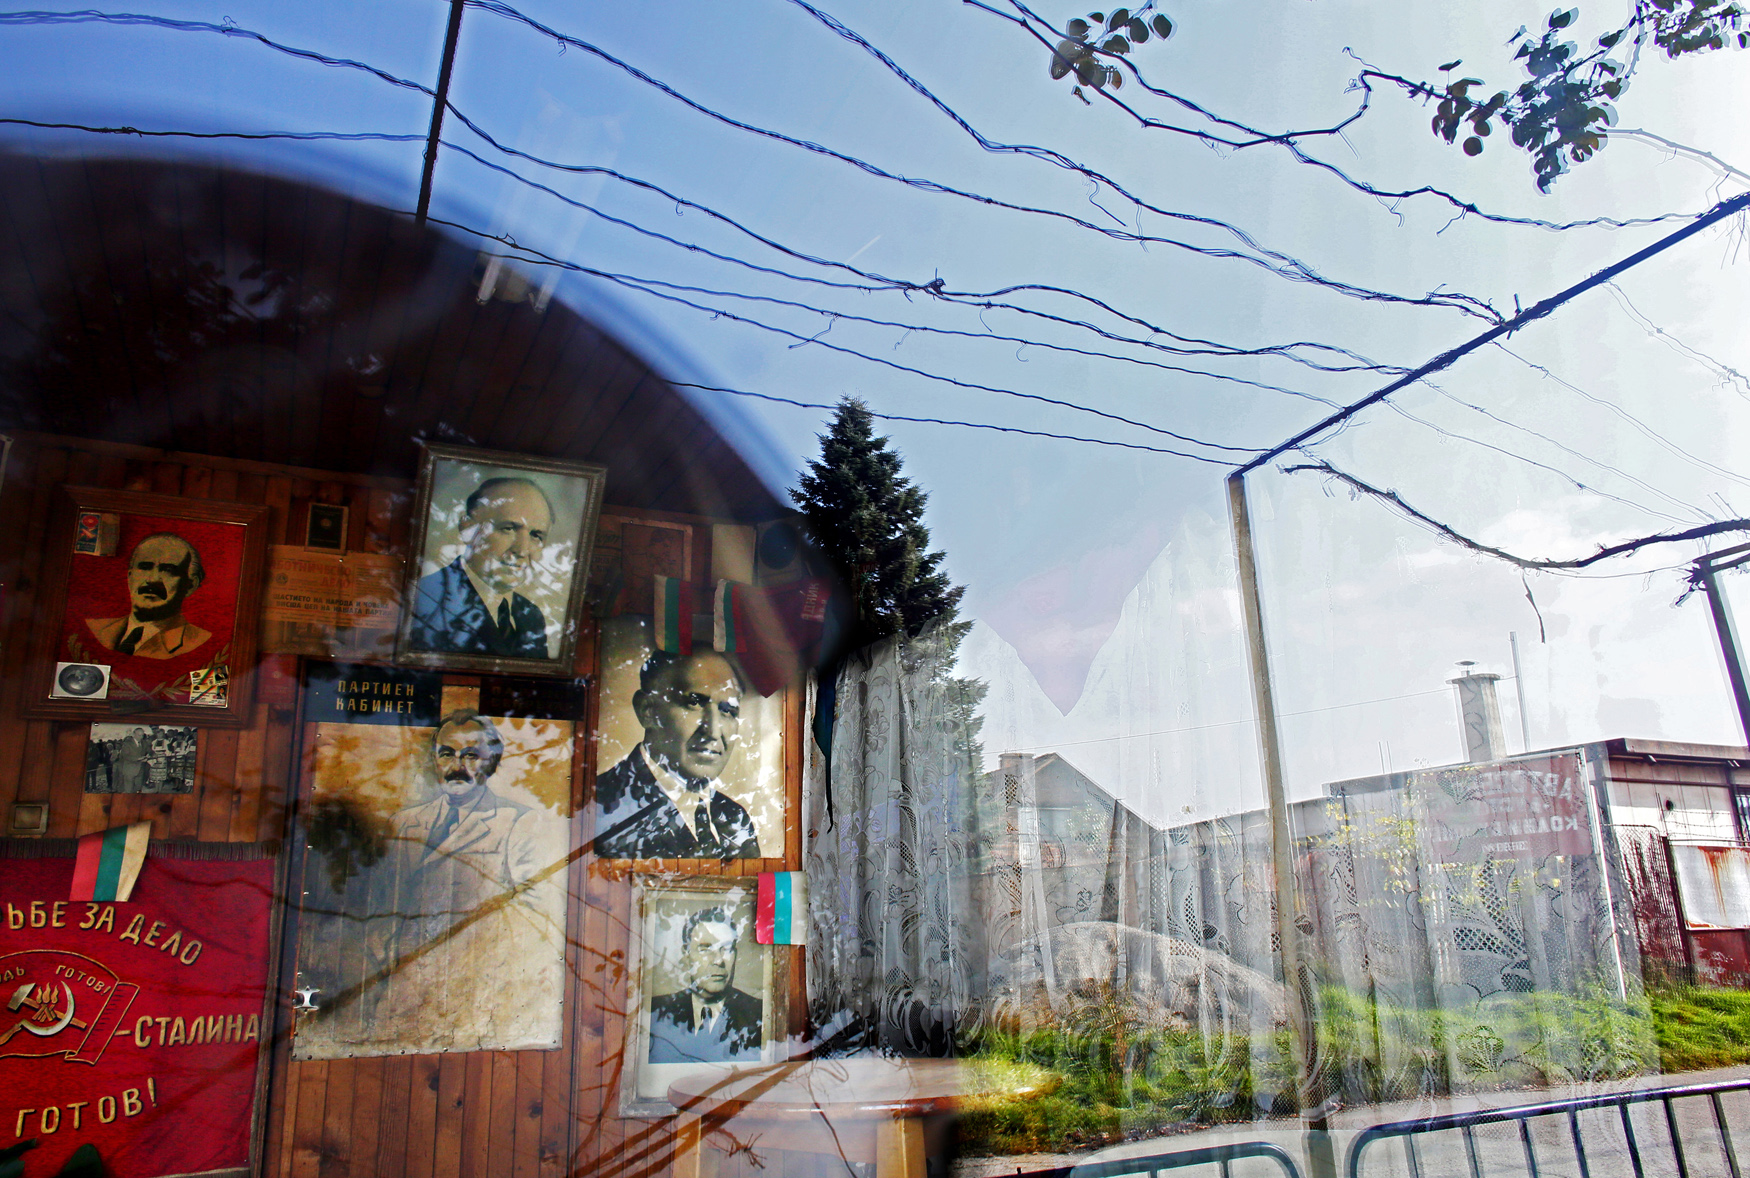 Communist nostalgia is still very much alive in Bulgaria. Tato, a bar in Sofia (currently closed due to the death of its owner,) is decorated with portraits of Bulgarian Communist dictator Todor Zhivkov (upper center,) in Bulgaria's capital Sofia, on November 6th, 2014. His nickname and bar's namesake {quote}Tato{quote} is a play on the word {quote}dad{quote} in Bulgarian. Zhivkov was the head of state of the People's Republic of Bulgaria from March 4, 1954 until the day after the fall of the Berlin Wall, November 10, 1989, when he resigned under political pressure over the country's worsening economy and public unrest.